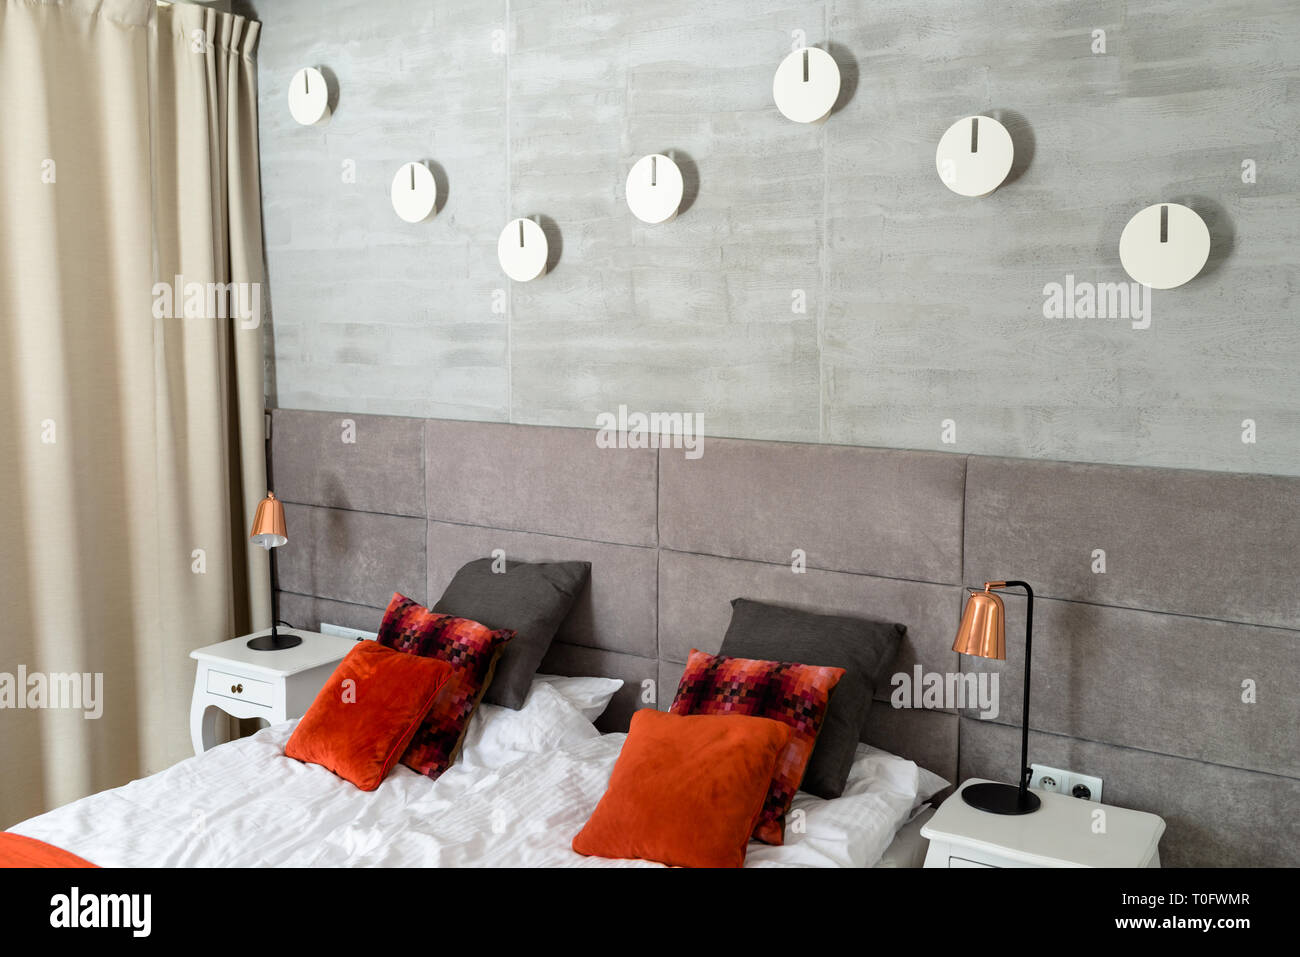 Bedroom with a large bed, orange pillows arranged in a row ...